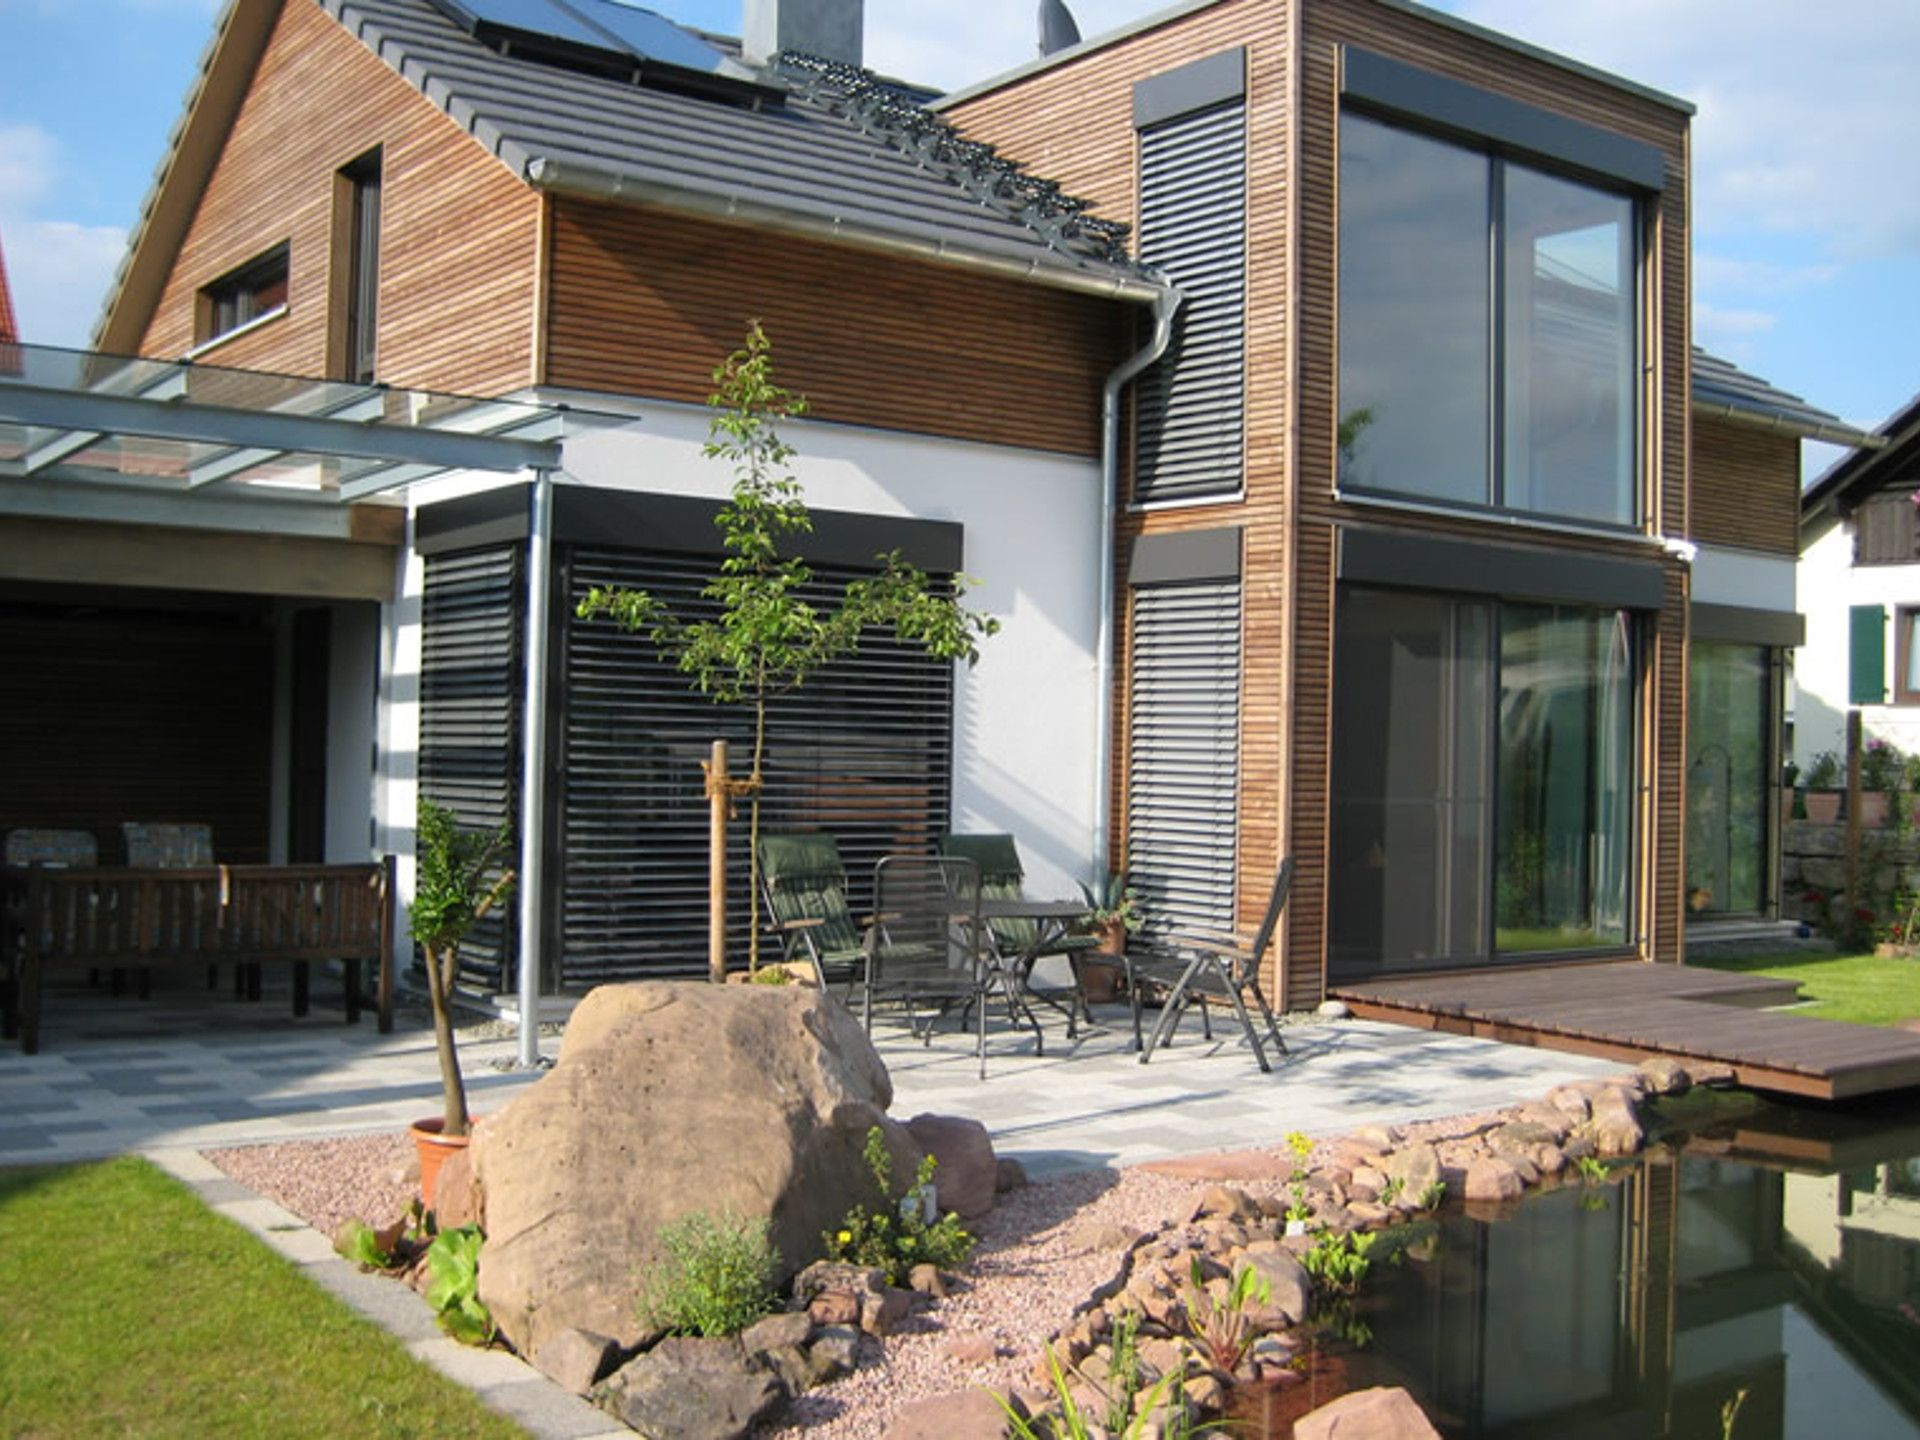 Haus Sandweg | Holzhaus | Pinterest | House, Architecture and Extensions